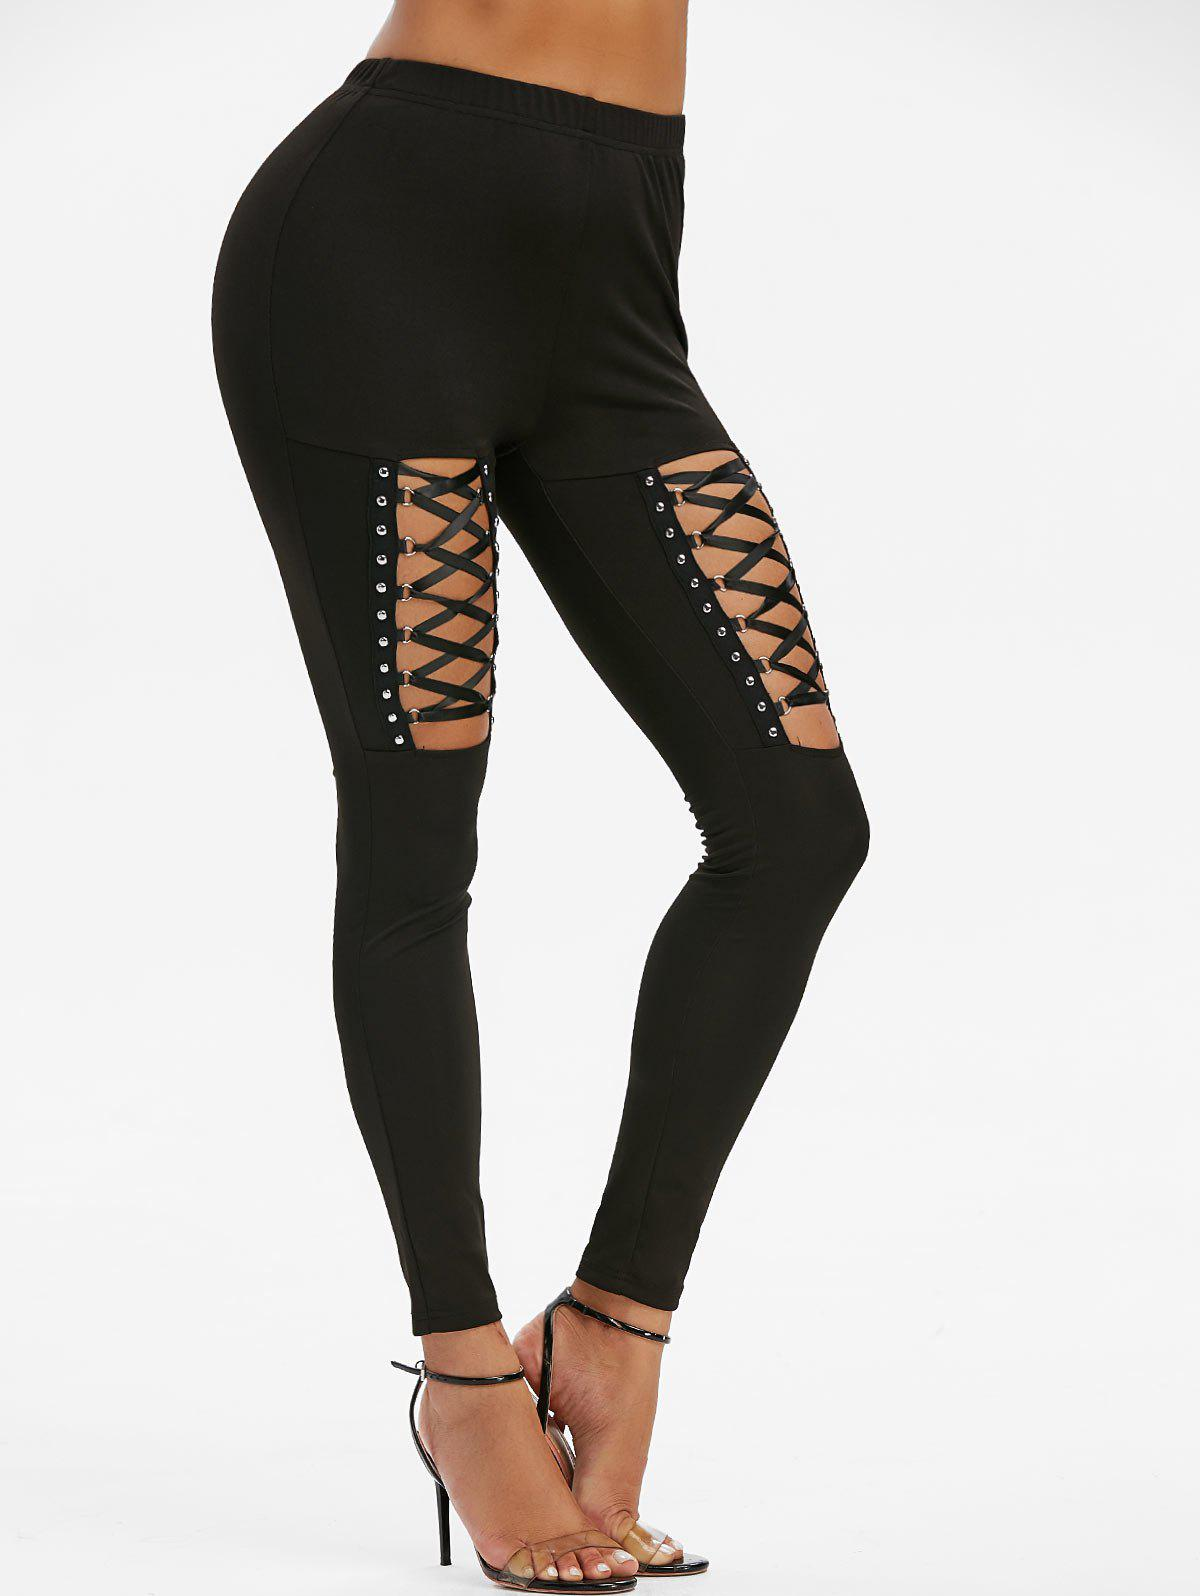 Chic High Waisted Rivet Detail Lace-up Gothic Leggings